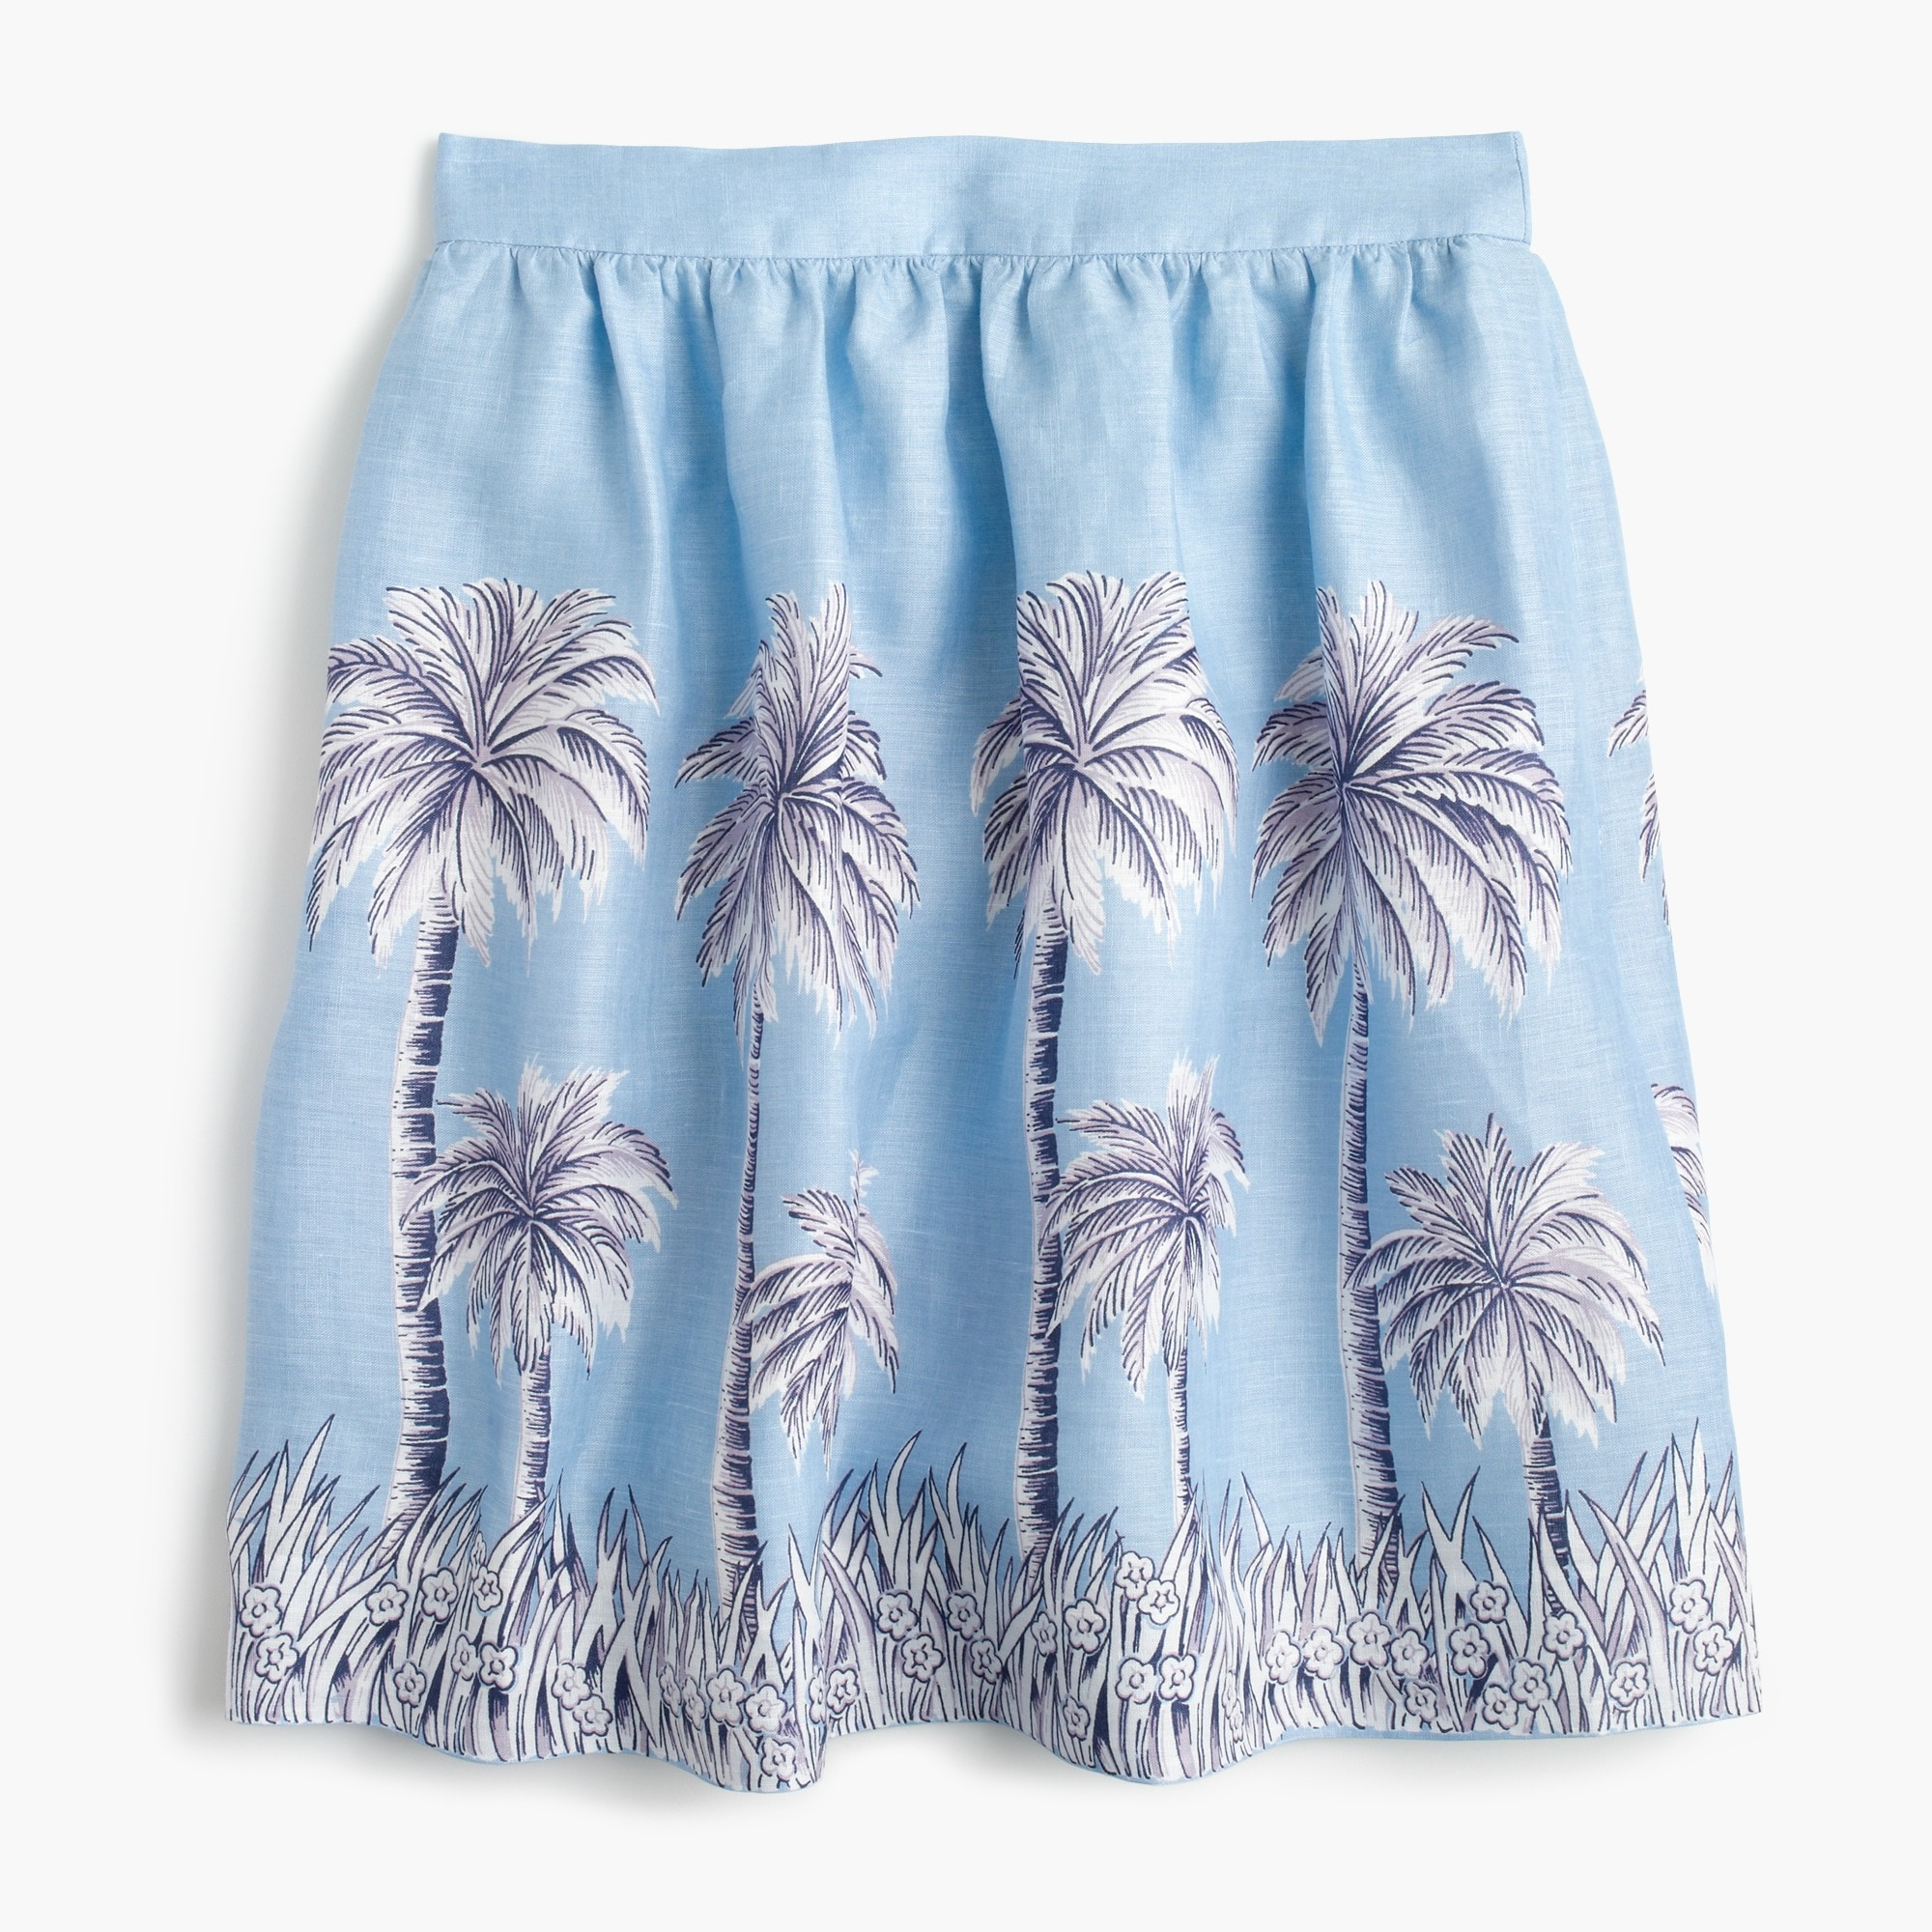 Petite linen skirt in palm tree print